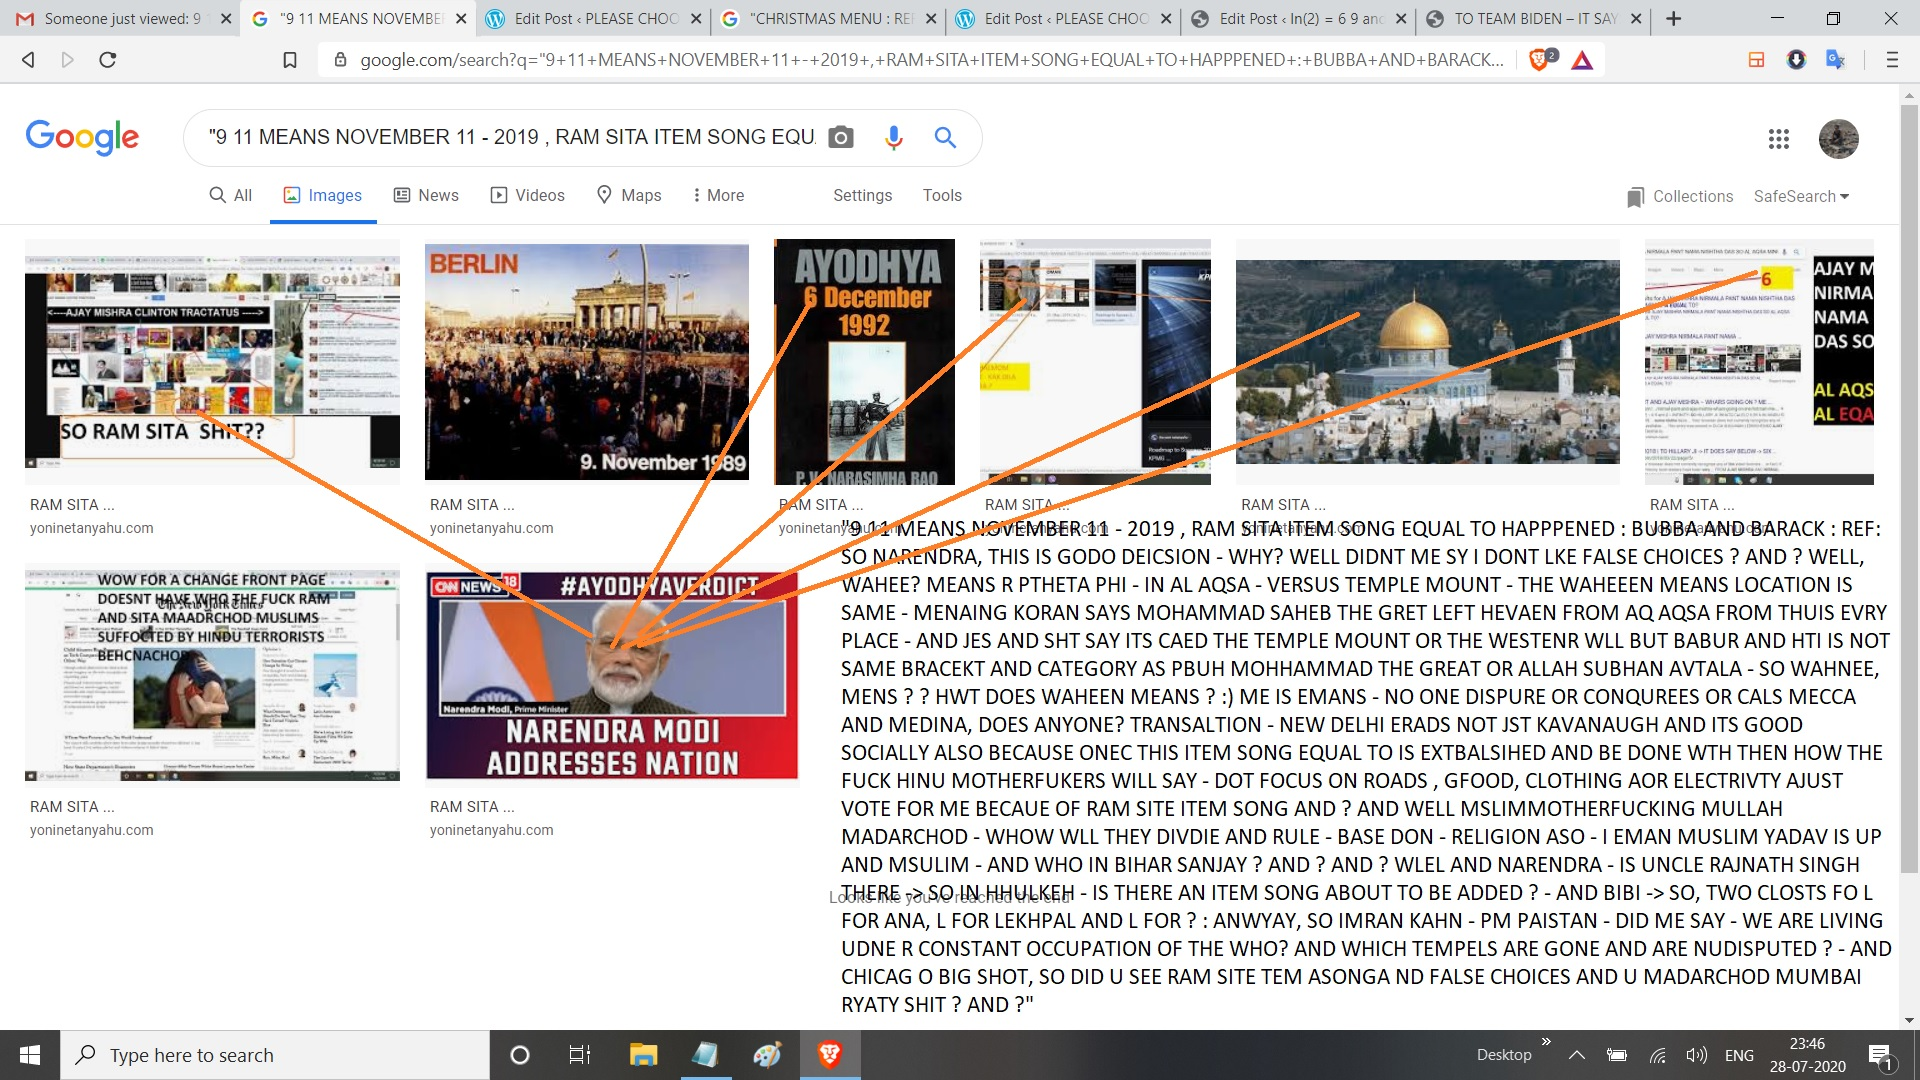 """9 11 MEANS NOVEMBER 11 - 2019 , RAM SITA ITEM SONG EQUAL TO HAPPPENED : BUBBA AND BARACK : REF: SO NARENDRA, THIS IS GODO DEICSION - WHY? WELL DIDNT ME SY I DONT LKE FALSE CHOICES ? AND ? WELL, WAHEE? MEANS R PTHETA PHI - IN AL AQSA - VERSUS TEMPLE MOUNT - THE WAHEEEN MEANS LOCATION IS SAME - MENAING KORAN SAYS MOHAMMAD SAHEB THE GRET LEFT HEVAEN FROM AQ AQSA FROM THUIS EVRY PLACE - AND JES AND SHT SAY ITS CAED THE TEMPLE MOUNT OR THE WESTENR WLL BUT BABUR AND HTI IS NOT SAME BRACEKT AND CATEGORY AS PBUH MOHHAMMAD THE GREAT OR ALLAH SUBHAN AVTALA - SO WAHNEE, MENS ? ? HWT DOES WAHEEN MEANS ? :) ME IS EMANS - NO ONE DISPURE OR CONQUREES OR CALS MECCA AND MEDINA, DOES ANYONE? TRANSALTION - NEW DELHI ERADS NOT JST KAVANAUGH AND ITS GOOD SOCIALLY ALSO BECAUSE ONEC THIS ITEM SONG EQUAL TO IS EXTBALSIHED AND BE DONE WTH THEN HOW THE FUCK HINU MOTHERFUKERS WILL SAY - DOT FOCUS ON ROADS , GFOOD, CLOTHING AOR ELECTRIVTY AJUST VOTE FOR ME BECAUE OF RAM SITE ITEM SONG AND ? AND WELL MSLIMMOTHERFUCKING MULLAH MADARCHOD - WHOW WLL THEY DIVDIE AND RULE - BASE DON - RELIGION ASO - I EMAN MUSLIM YADAV IS UP AND MSULIM - AND WHO IN BIHAR SANJAY ? AND ? AND ? WLEL AND NARENDRA - IS UNCLE RAJNATH SINGH THERE -> SO IN HHULKEH - IS THERE AN ITEM SONG ABOUT TO BE ADDED ? - AND BIBI -> SO, TWO CLOSTS FO L FOR ANA, L FOR LEKHPAL AND L FOR ? : ANWYAY, SO IMRAN KAHN - PM PAISTAN - DID ME SAY - WE ARE LIVING UDNE R CONSTANT OCCUPATION OF THE WHO? AND WHICH TEMPELS ARE GONE AND ARE NUDISPUTED ? - AND CHICAG O BIG SHOT, SO DID U SEE RAM SITE TEM ASONGA ND FALSE CHOICES AND U MADARCHOD MUMBAI RYATY SHIT ? AND ?"""